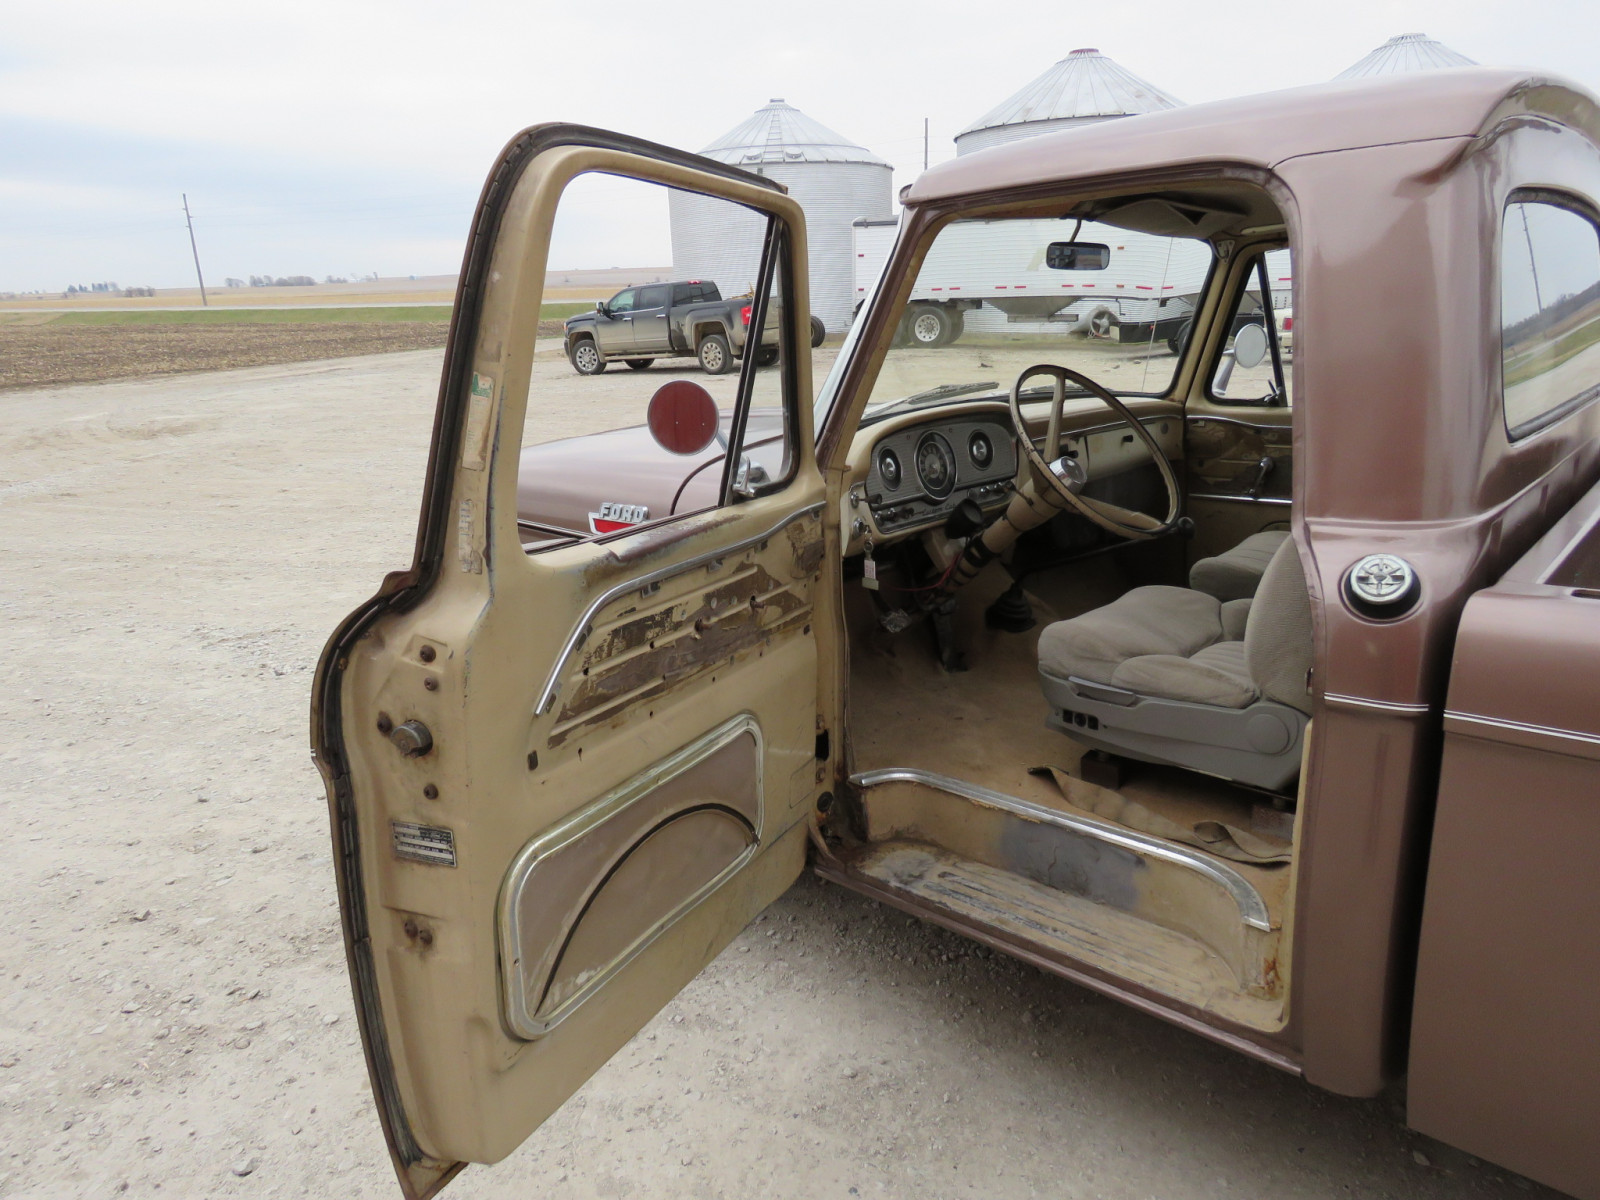 1964 Ford F100 Custom Cab Pickup - Image 7